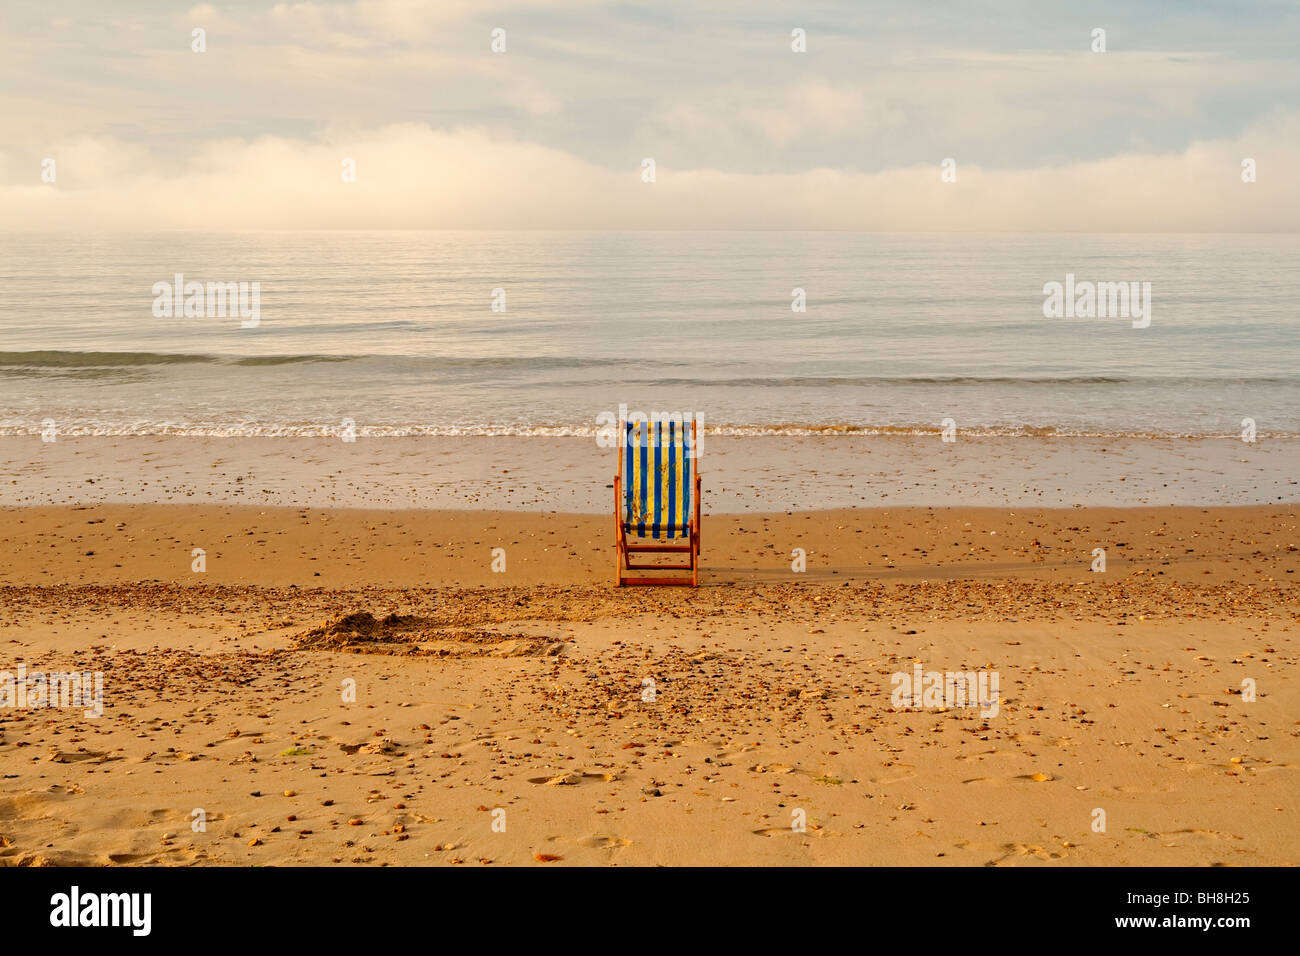 View of the sandy beach and abandoned striped wooden deckchair at Bournemouth in Dorset in south west England UK - Stock Image